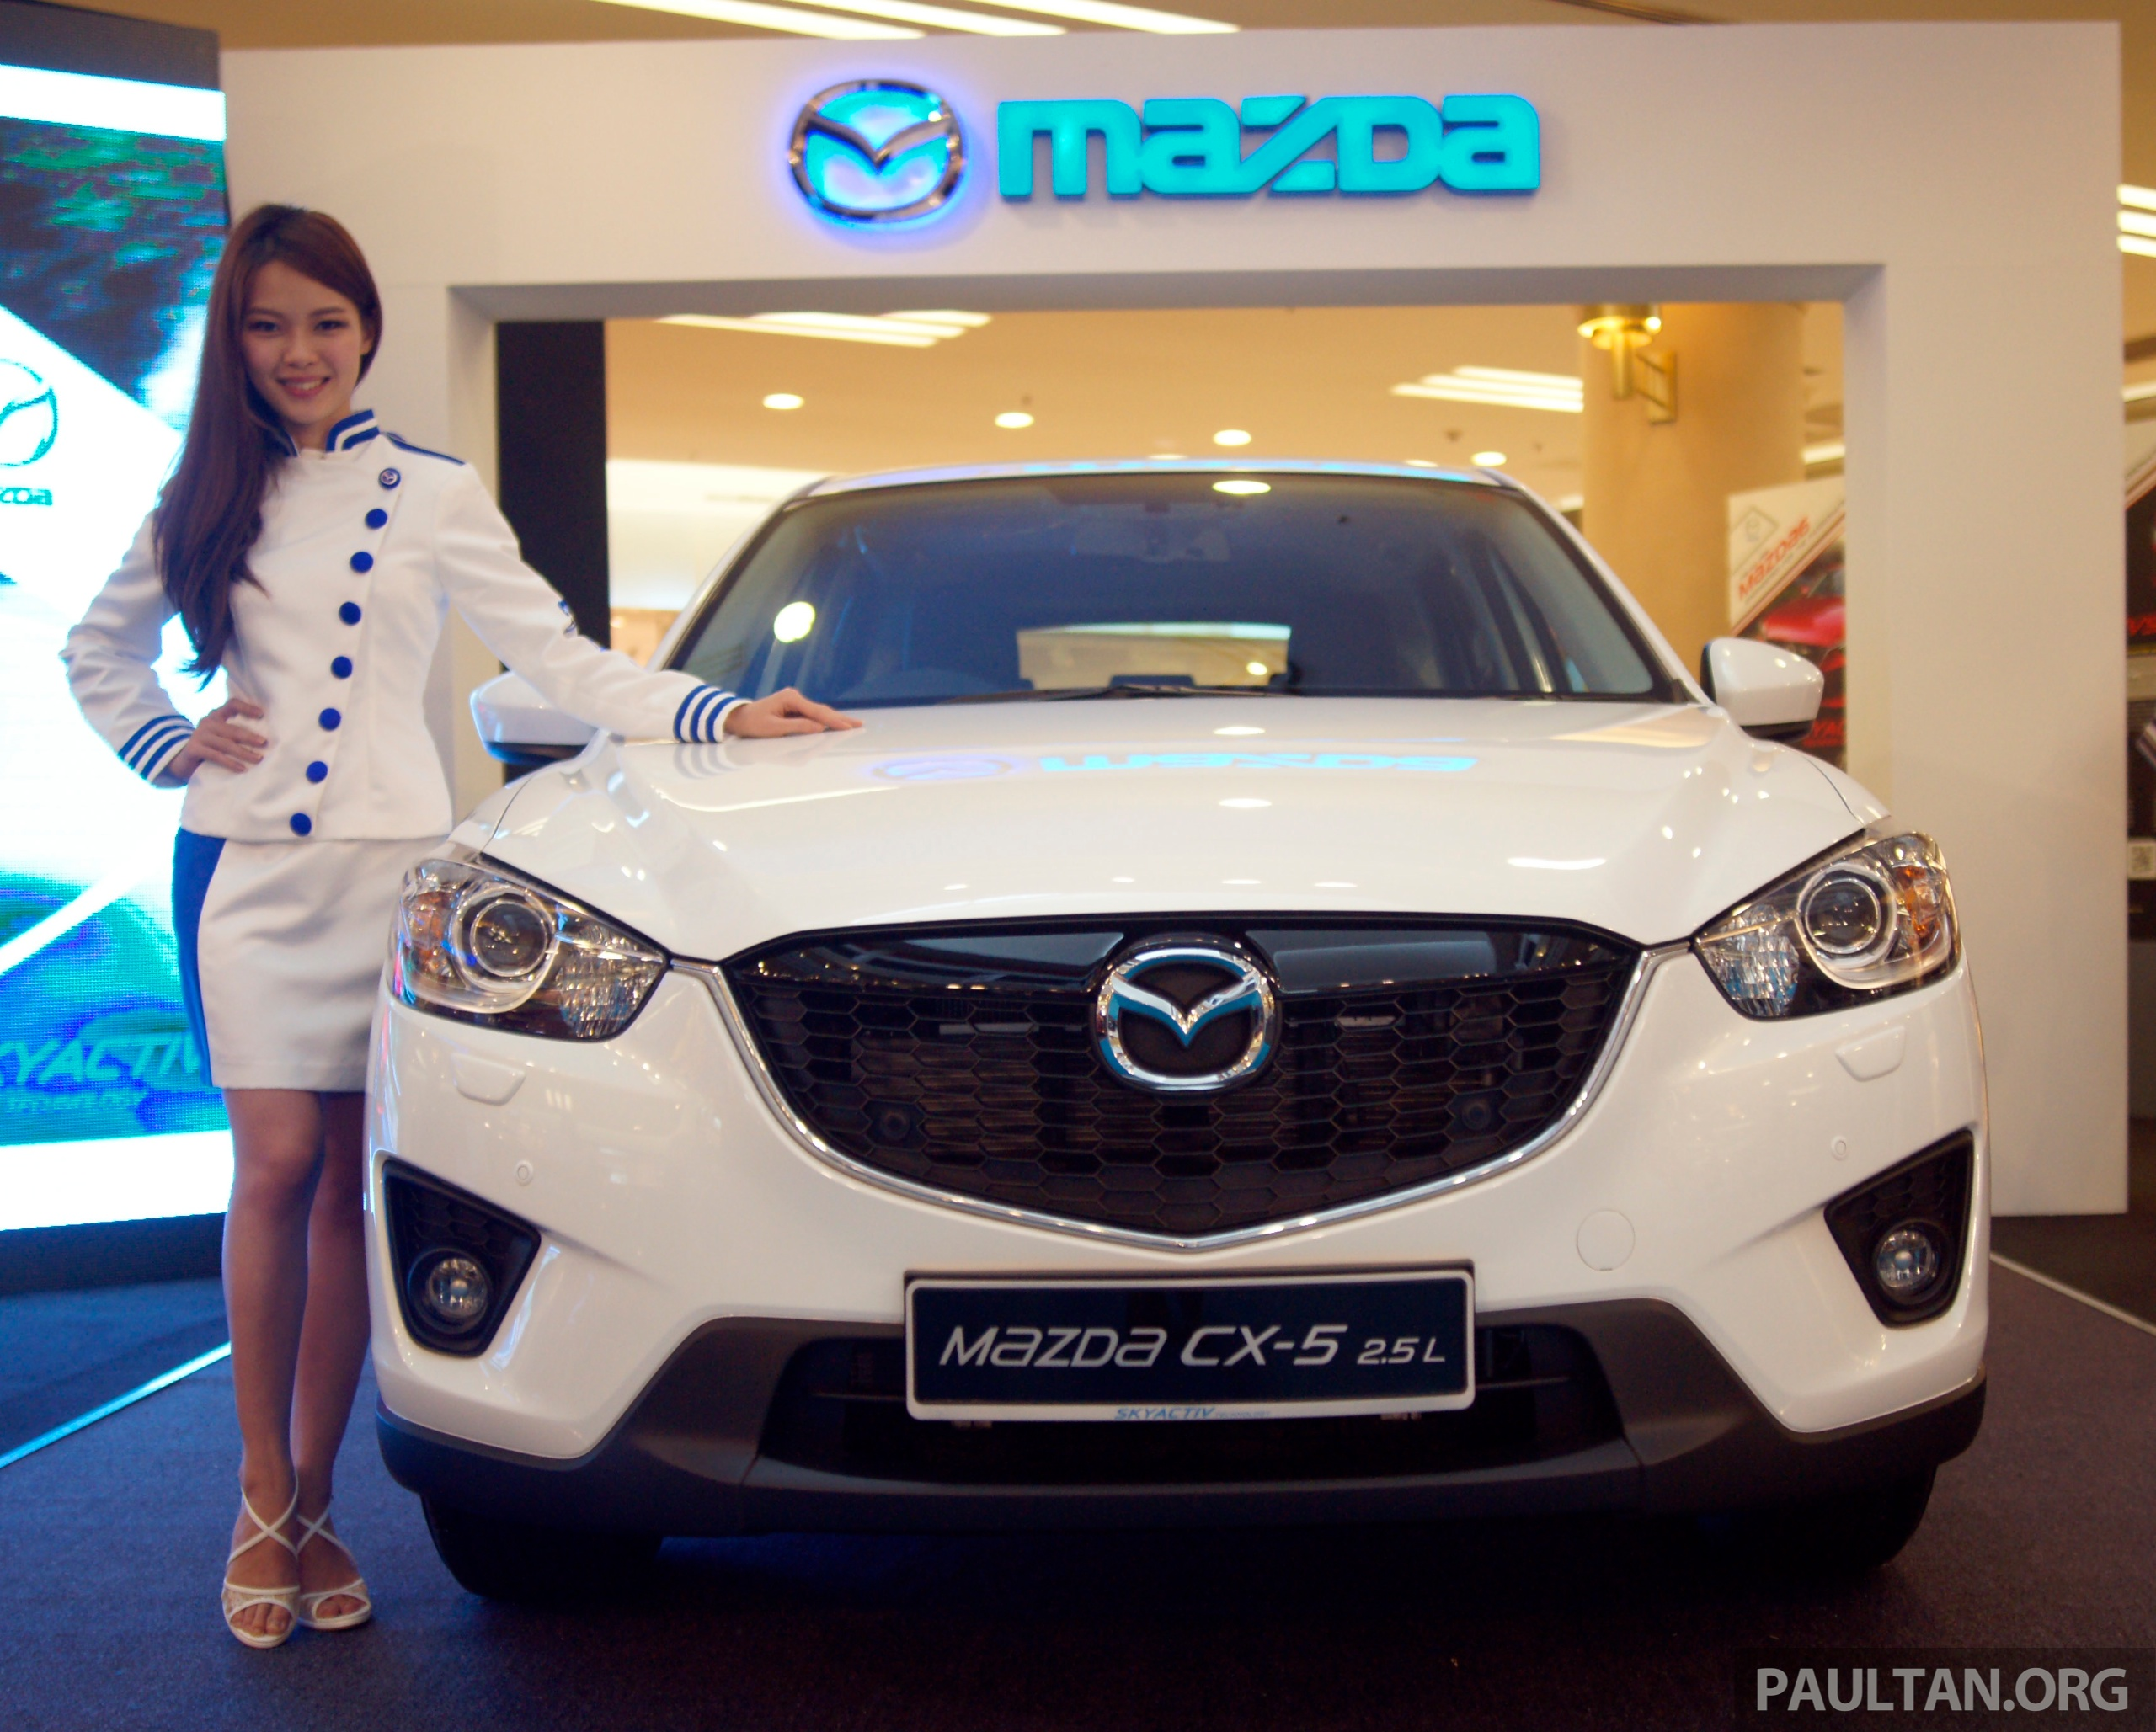 Mazda Cx >> Mazda CX-5 2.5 launched: 2WD RM165k, 4WD RM175k Paul Tan - Image 235918